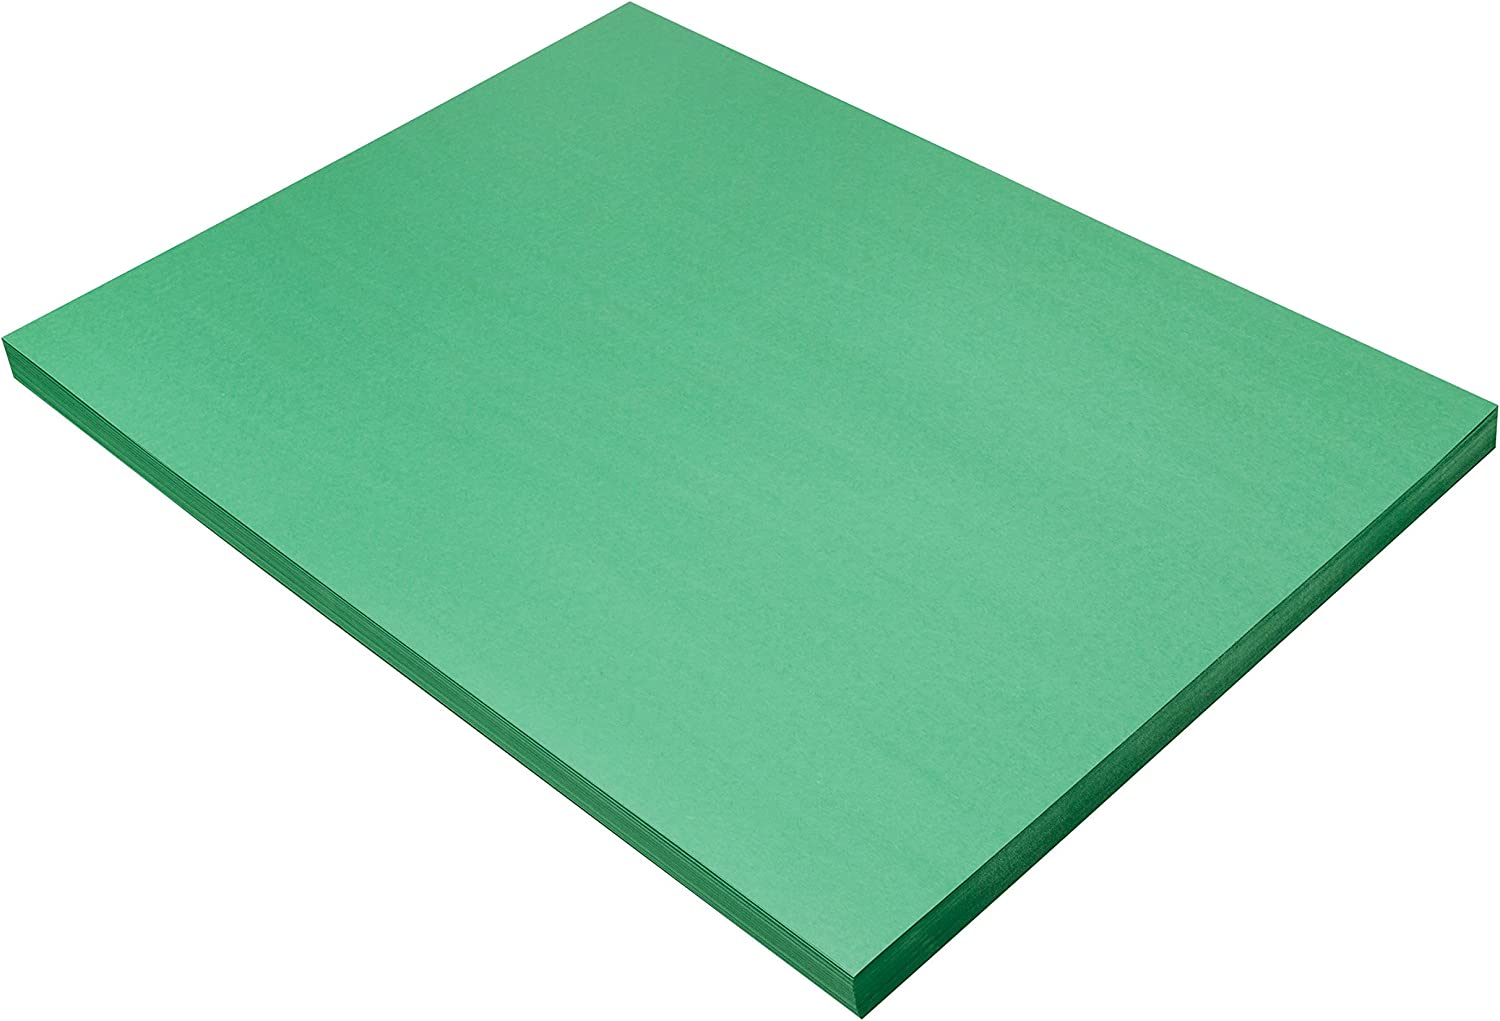 100 Sheets SunWorks Construction Paper Holiday Green 18 x 24